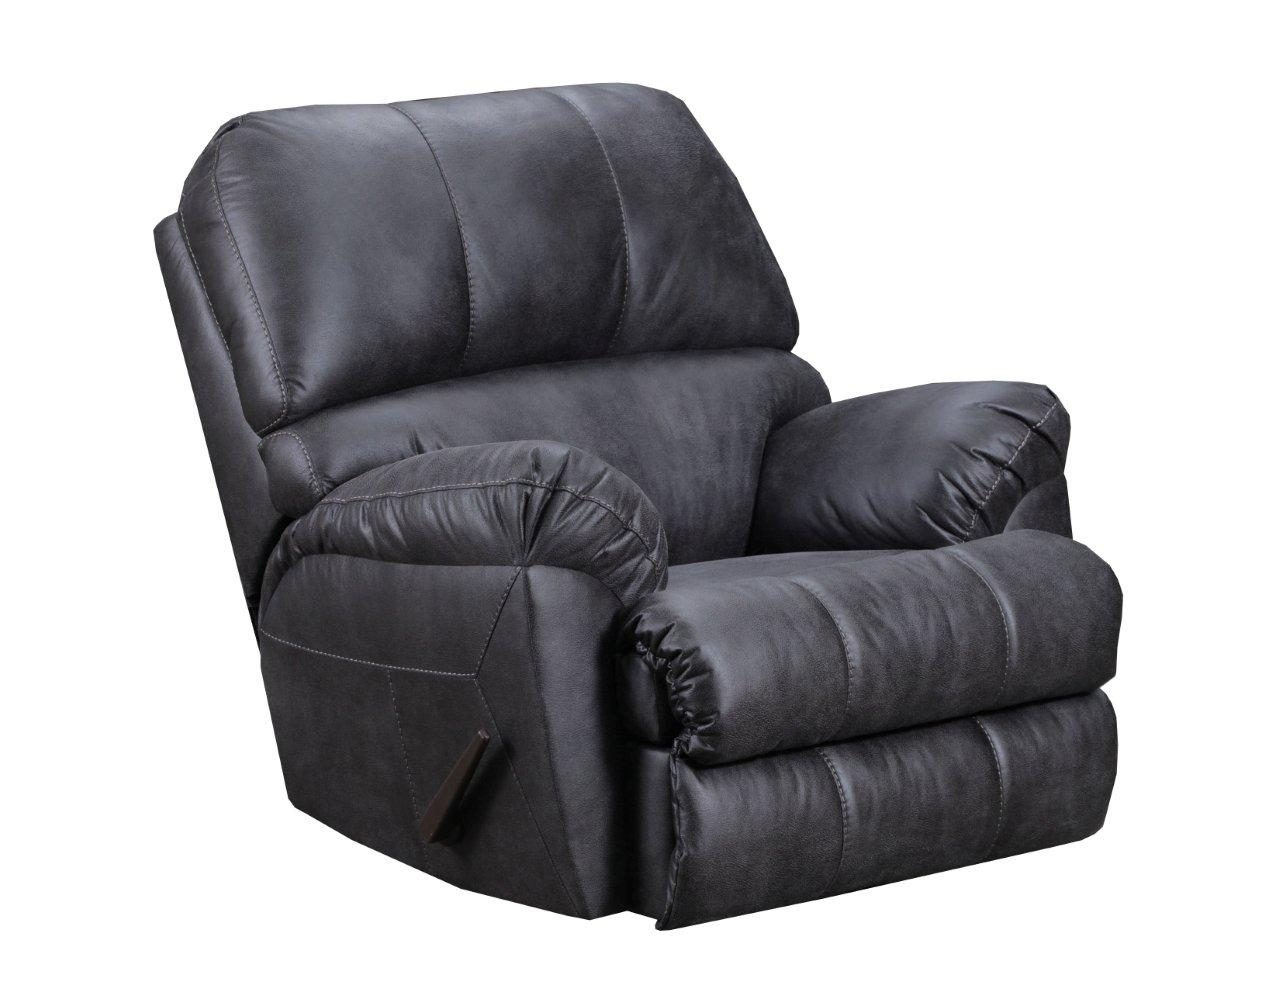 Shiloh Granite Recliner